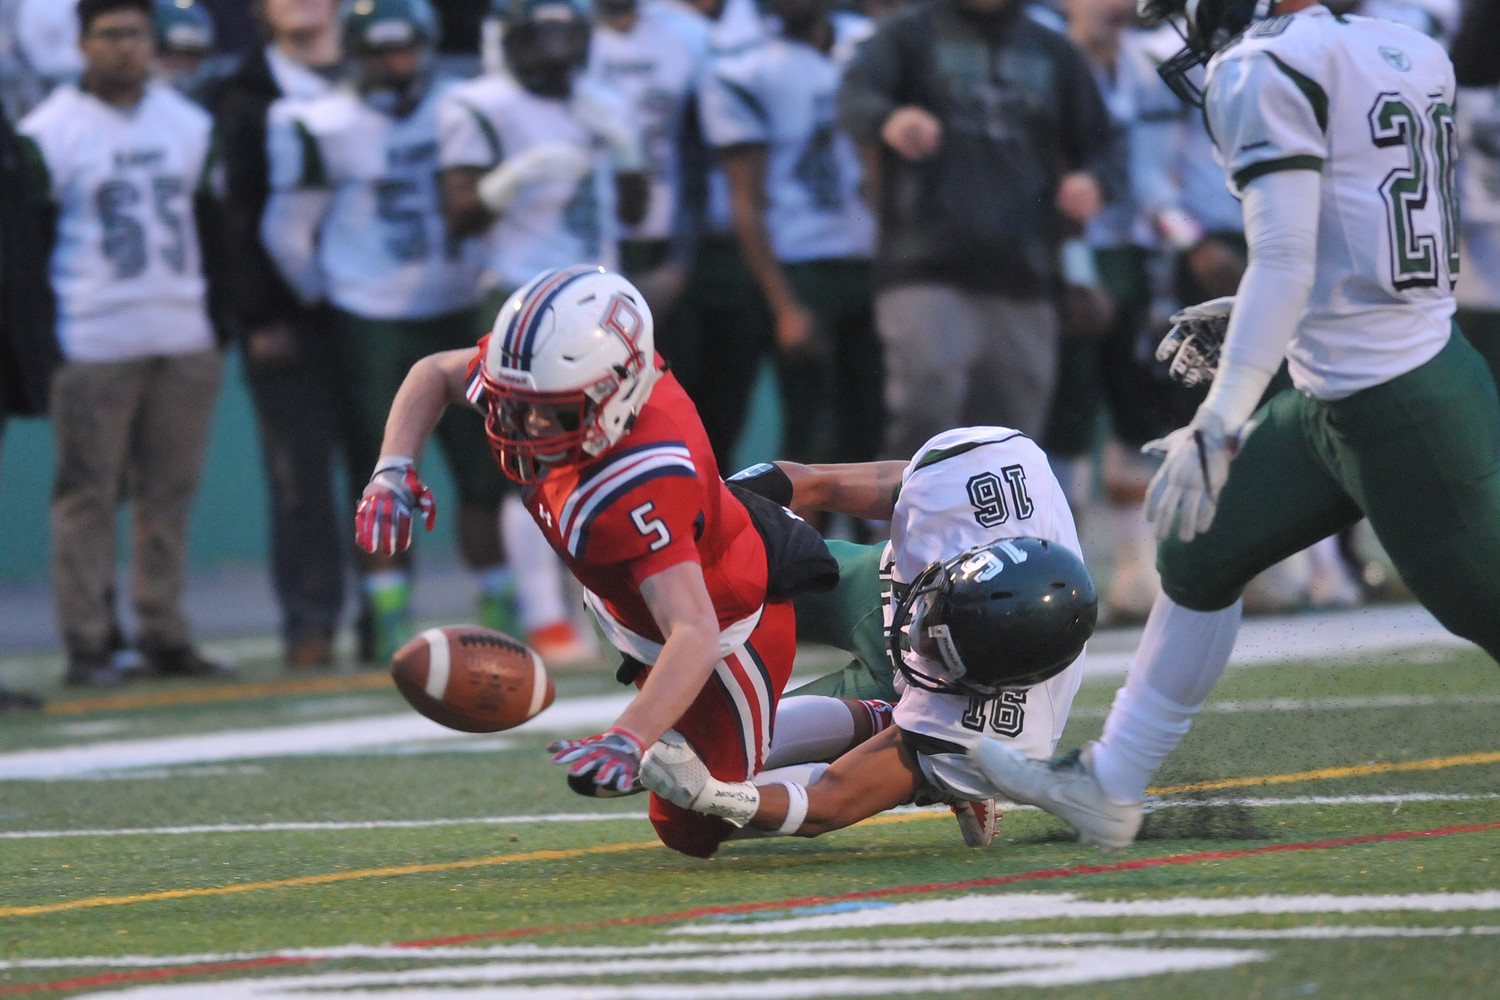 Portsmouth wide receiver Brian Hamilton fumbles the ball on the Patriots' first drive of the game in Saturday's Division I championship game.